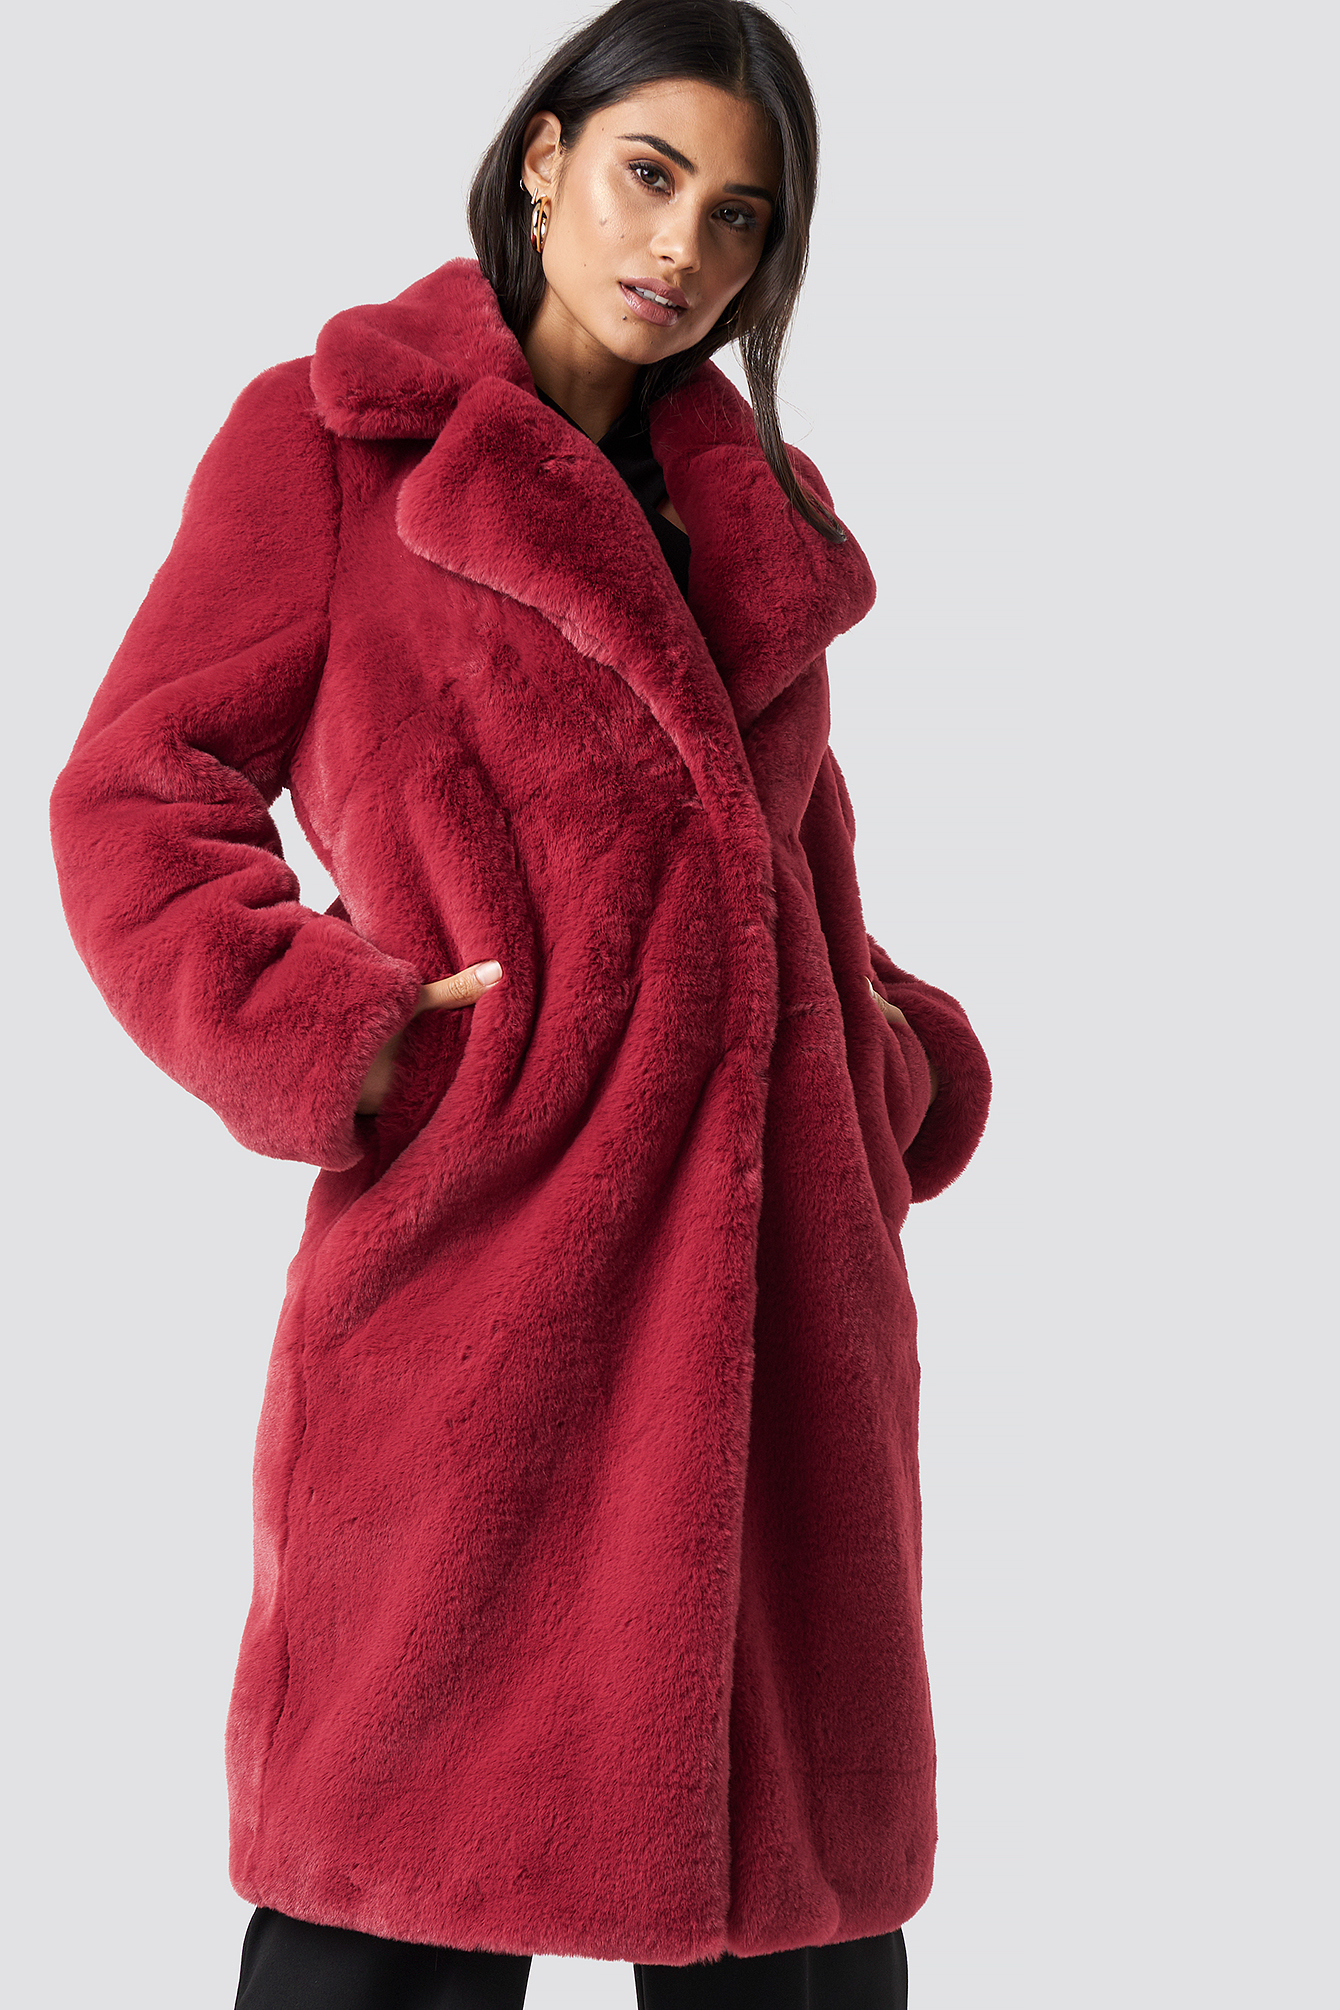 dilara x na-kd -  Faux Fur Maxi Coat - Red